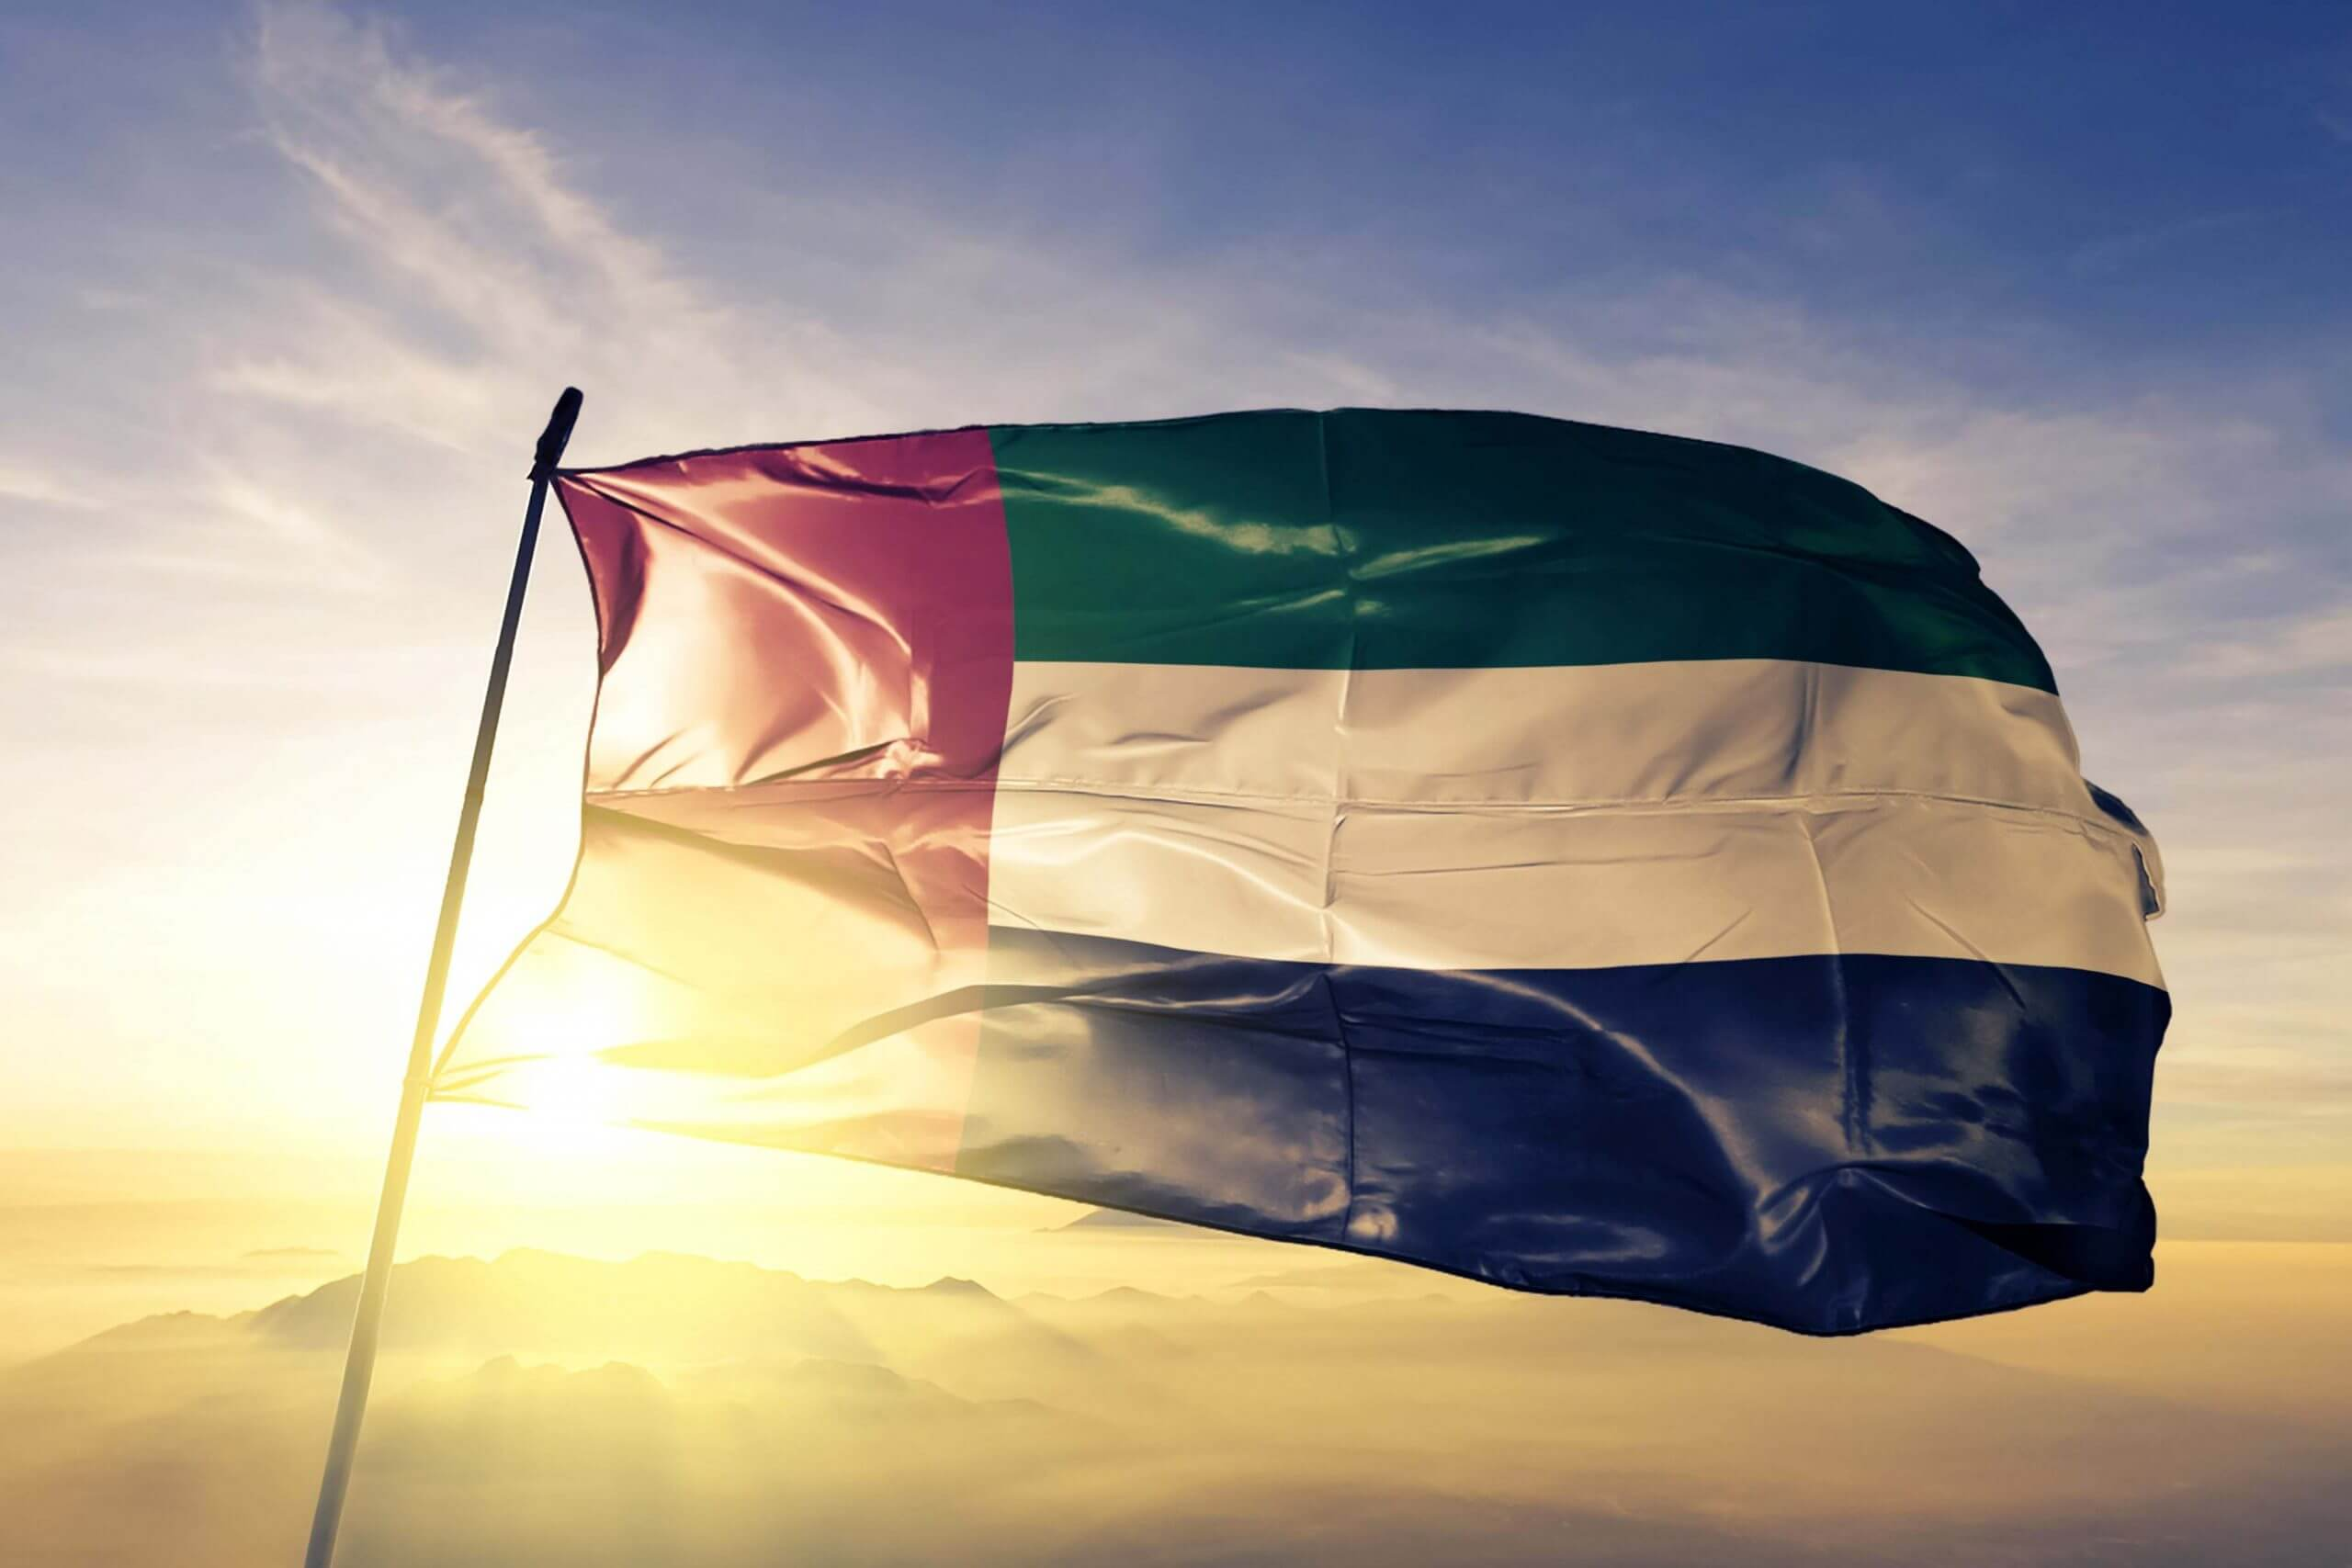 All That You Need to Know About The 2020 UAE National Day 49th Celebrations